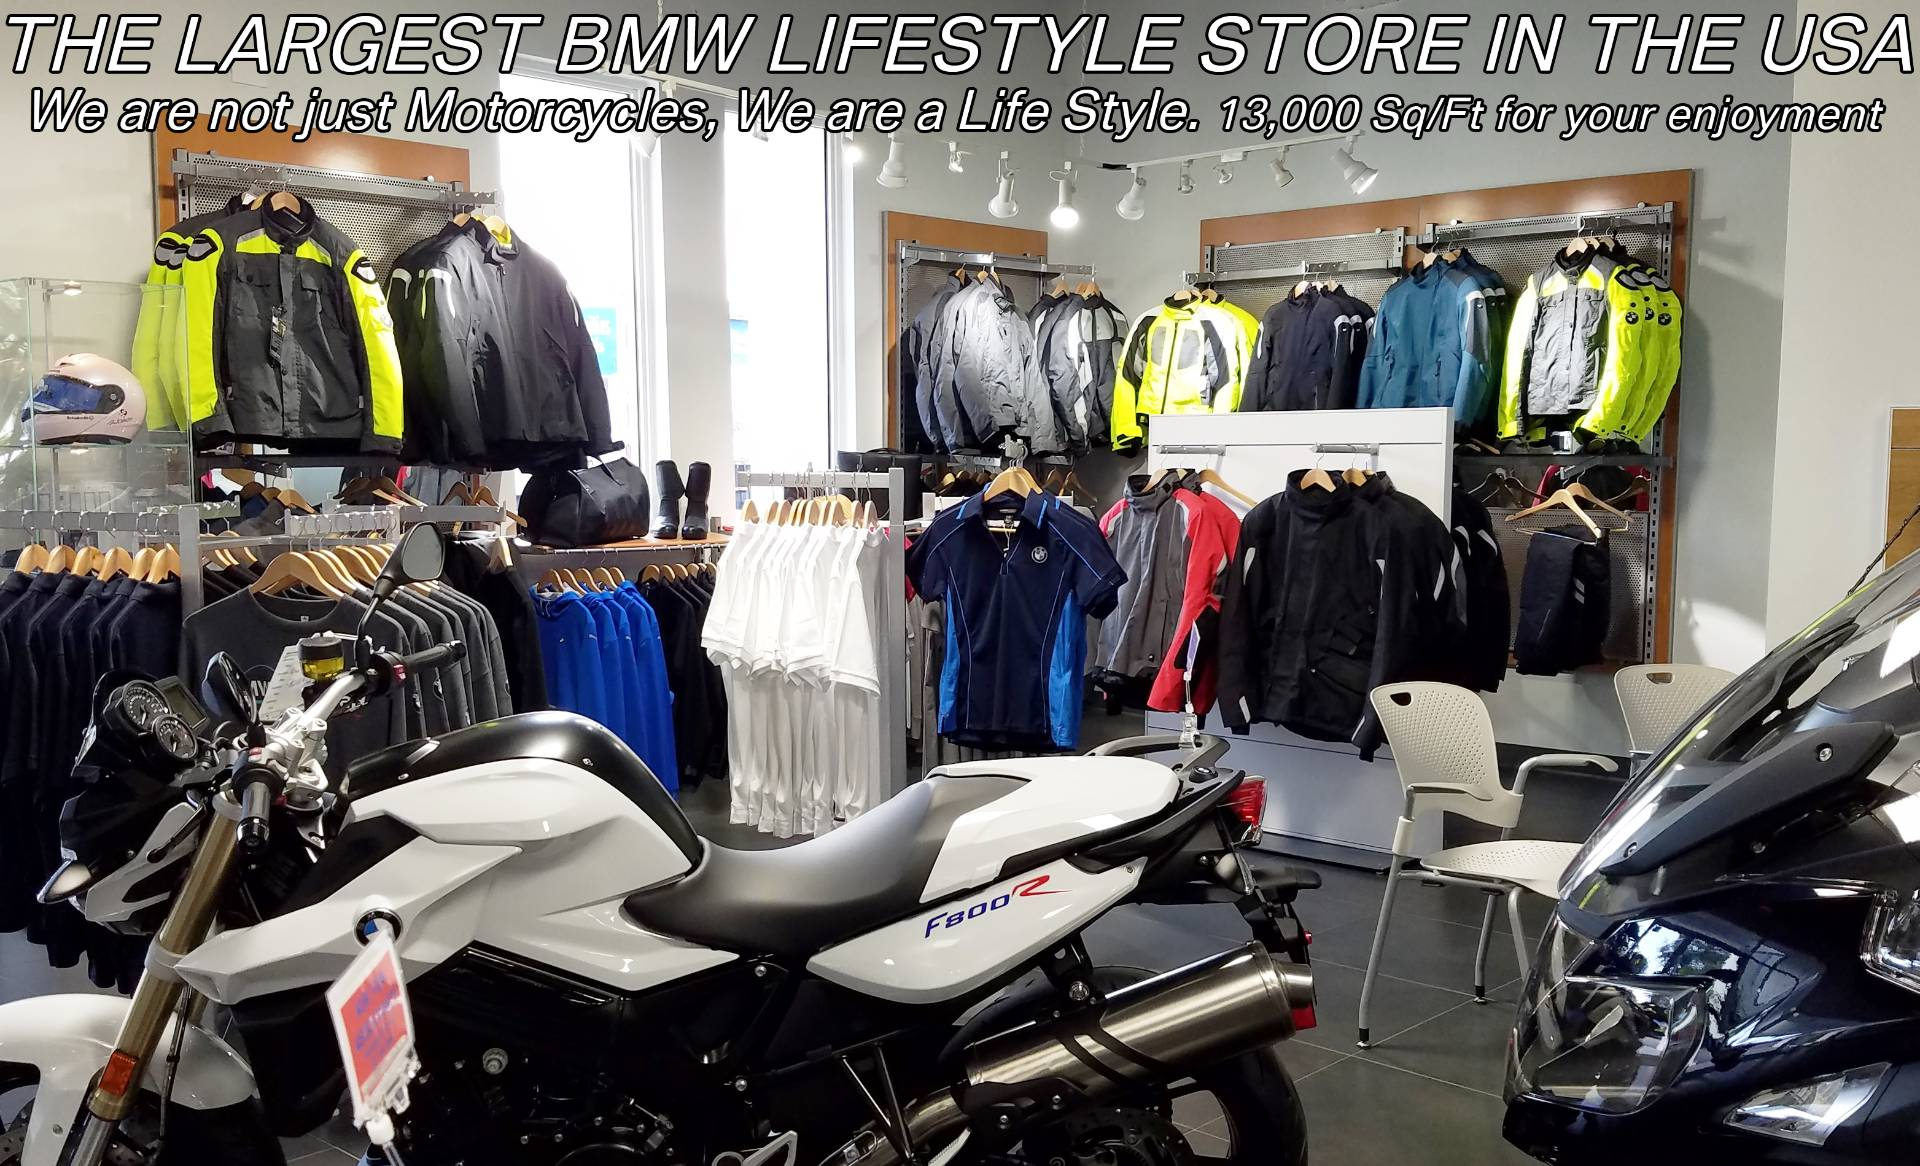 Used 2014 BMW R 1200 GS for sale, Pre-owned BMW R1200GS for sale, BMW Motorcycle Adventure, used BMW GS Fire Blue, BMW Motorcycles of Miami, Motorcycles of Miami, Motorcycles Miami, New Motorcycles, Used Motorcycles, pre-owned. #BMWMotorcyclesOfMiami #MotorcyclesOfMiami - Photo 34